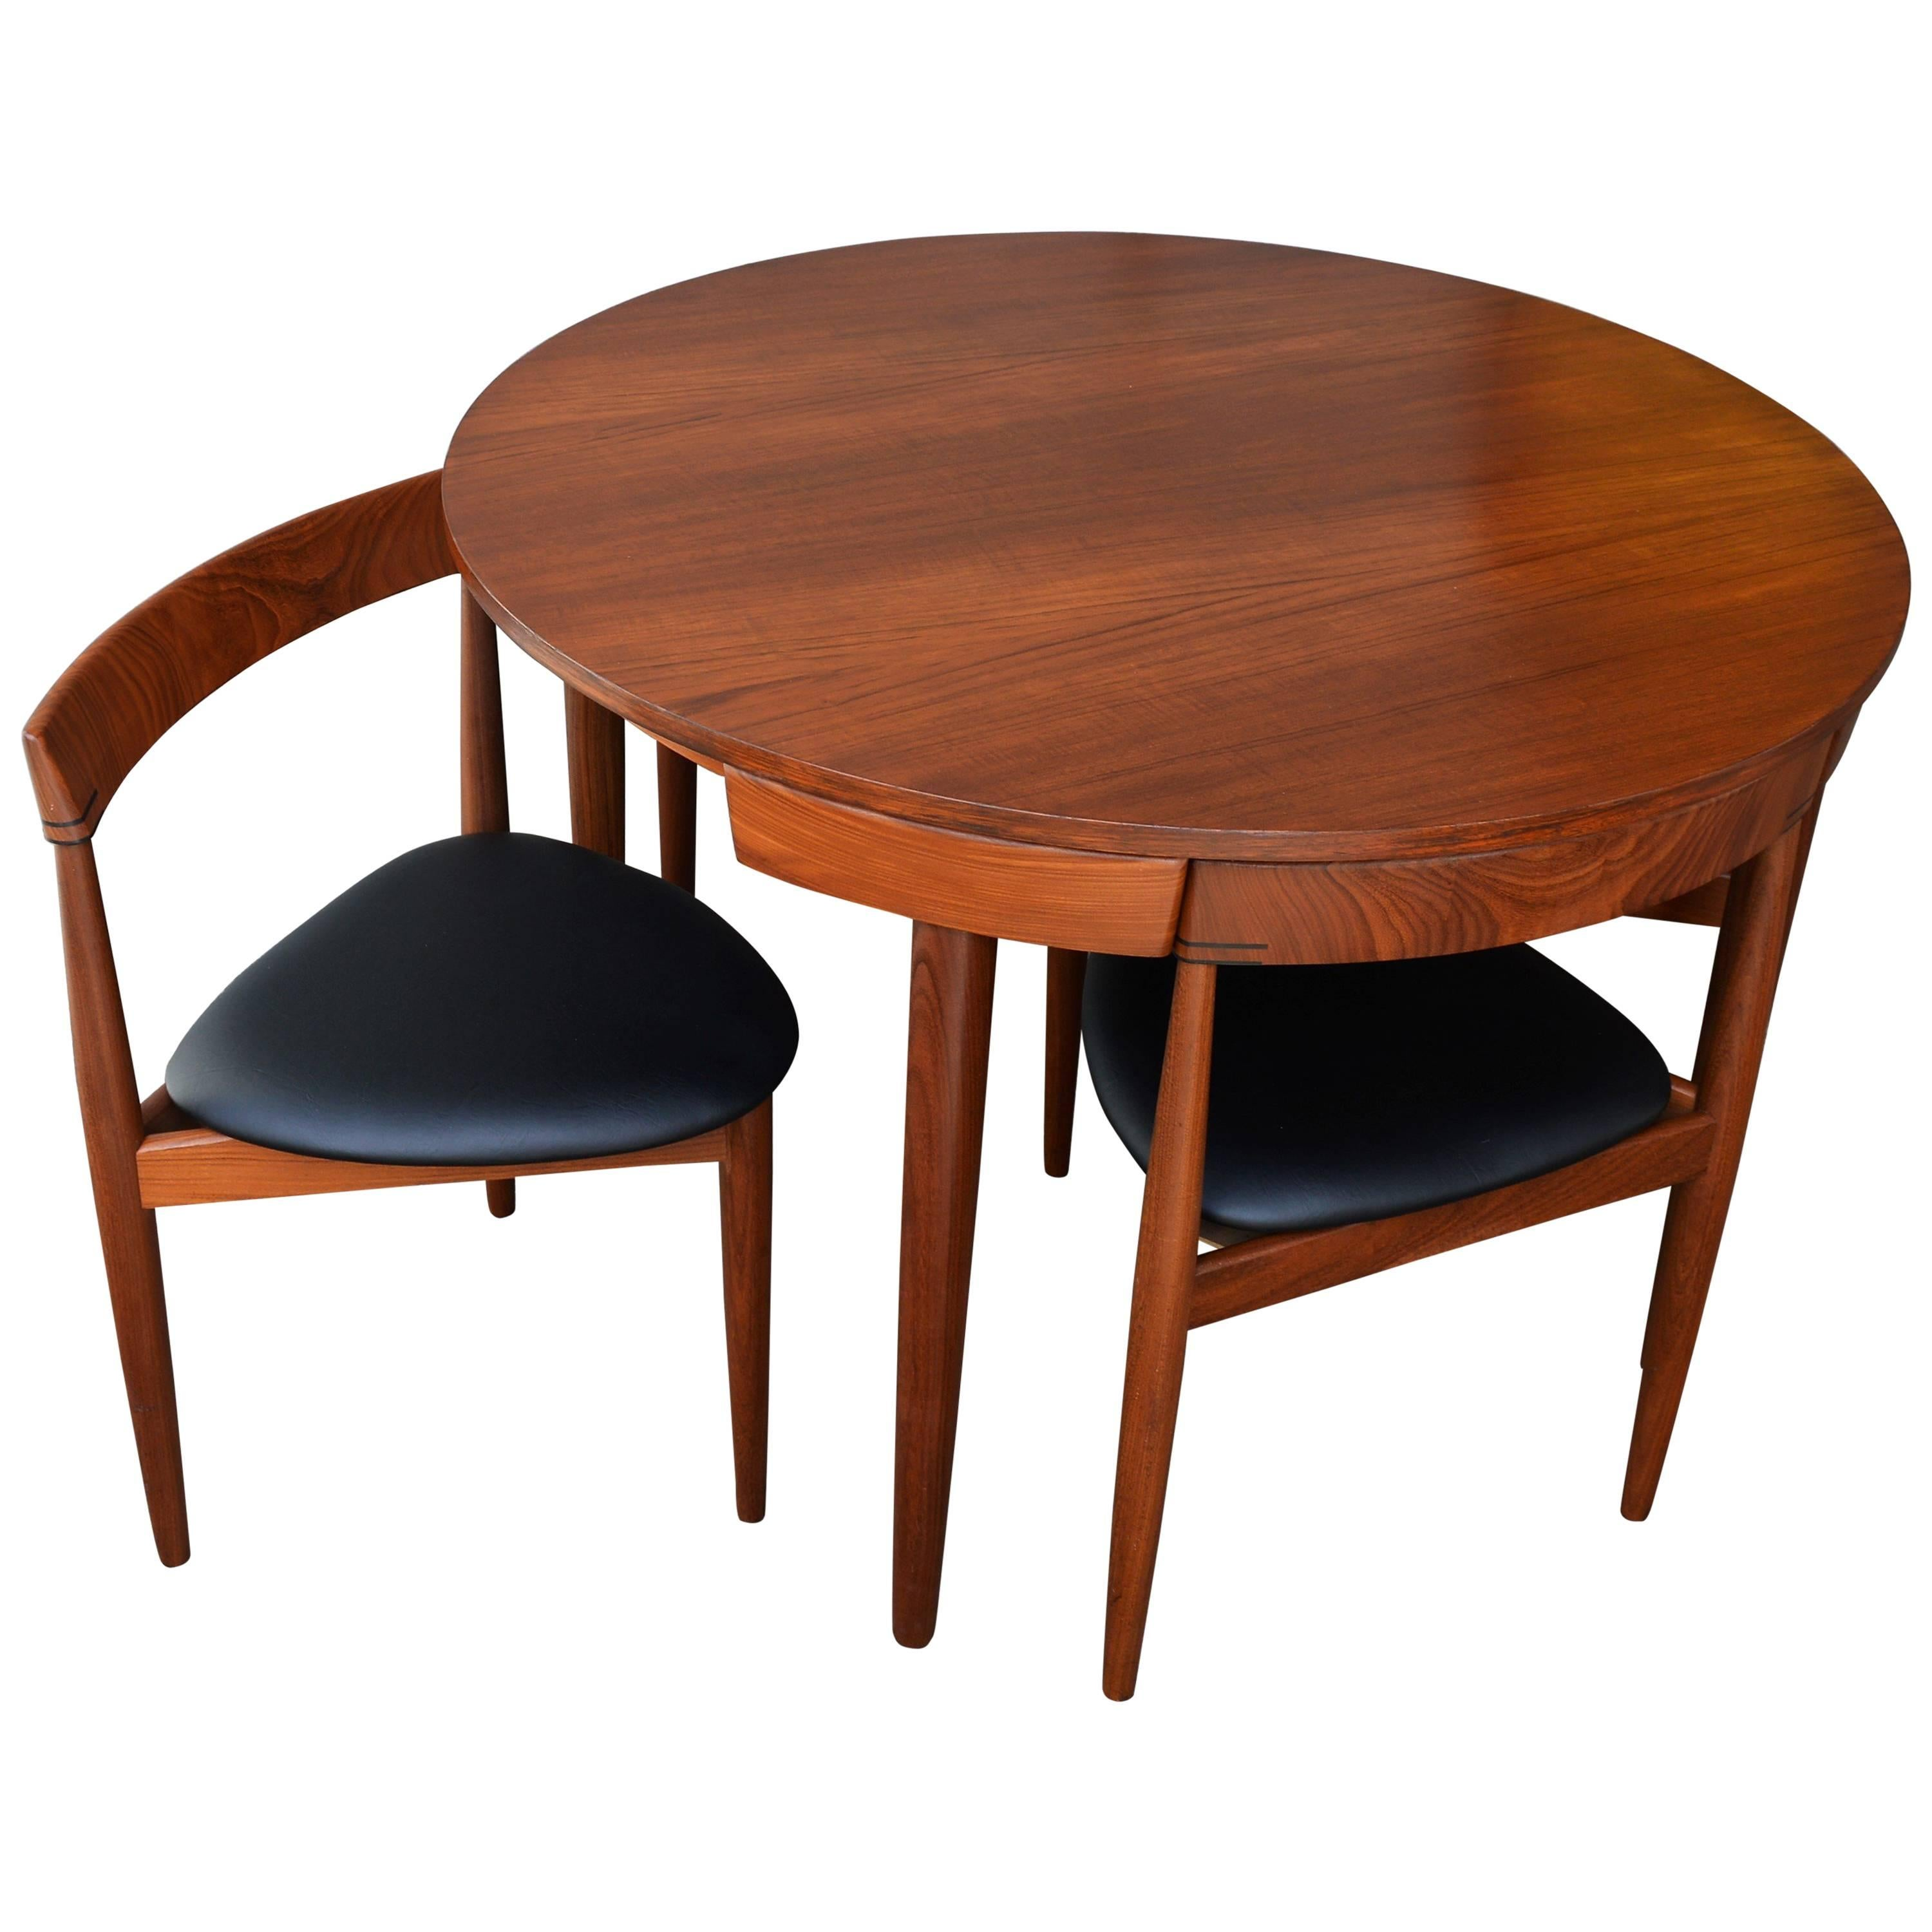 Nice Compact Hans Olsen Teak Dining Set With Four Dining Chairs For Frem Rojle